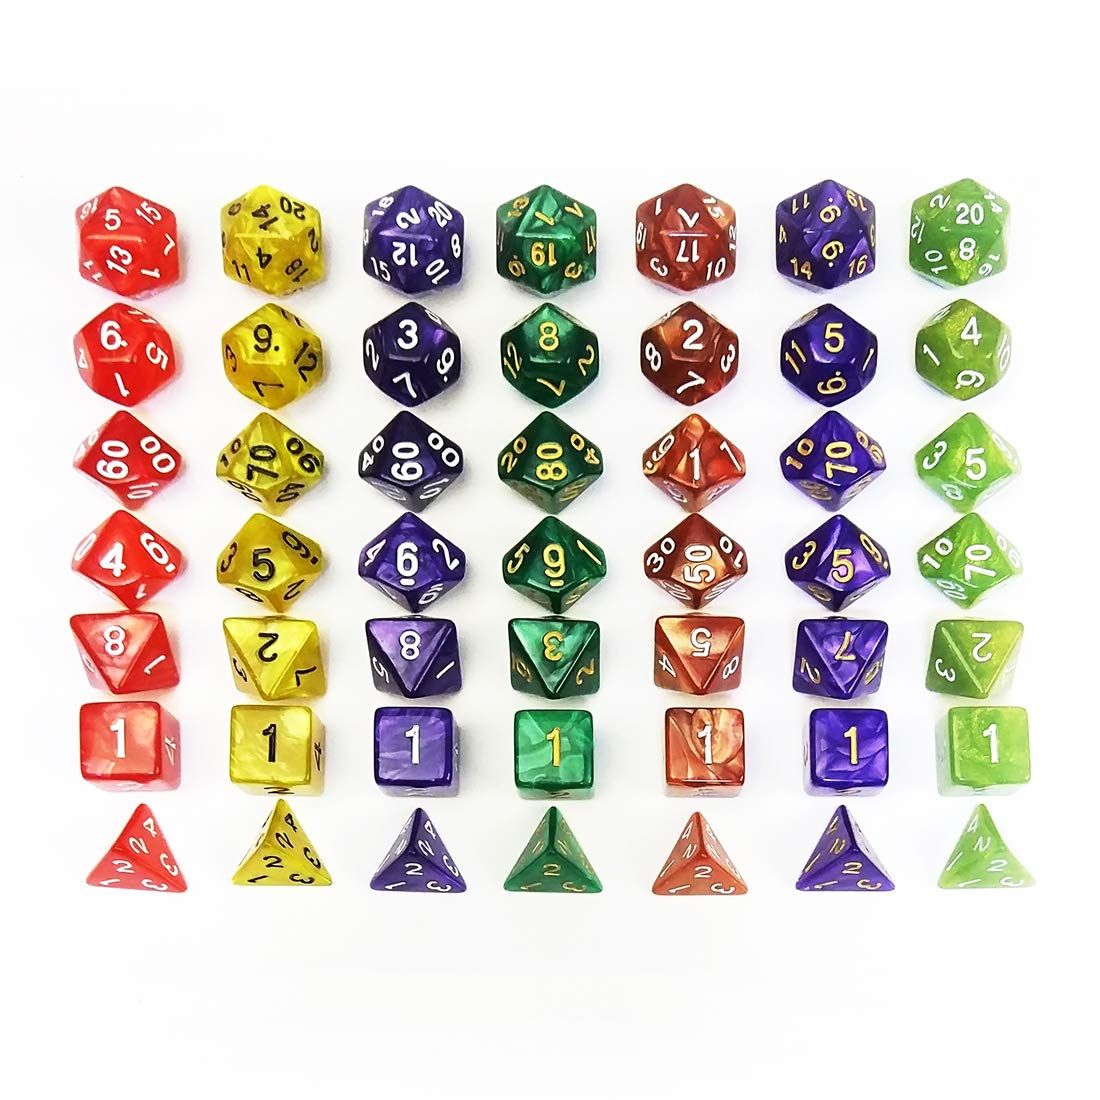 QMAY DND Dice Set, 140PCS Polyhedral Game Dice, 20 Color Double-Colors DND Dice Role Playing Dice for Dungeon and Dragons DND RPG MTG Table Games Dice D4 D8 D10 D12 D20 by QMAY (Image #7)